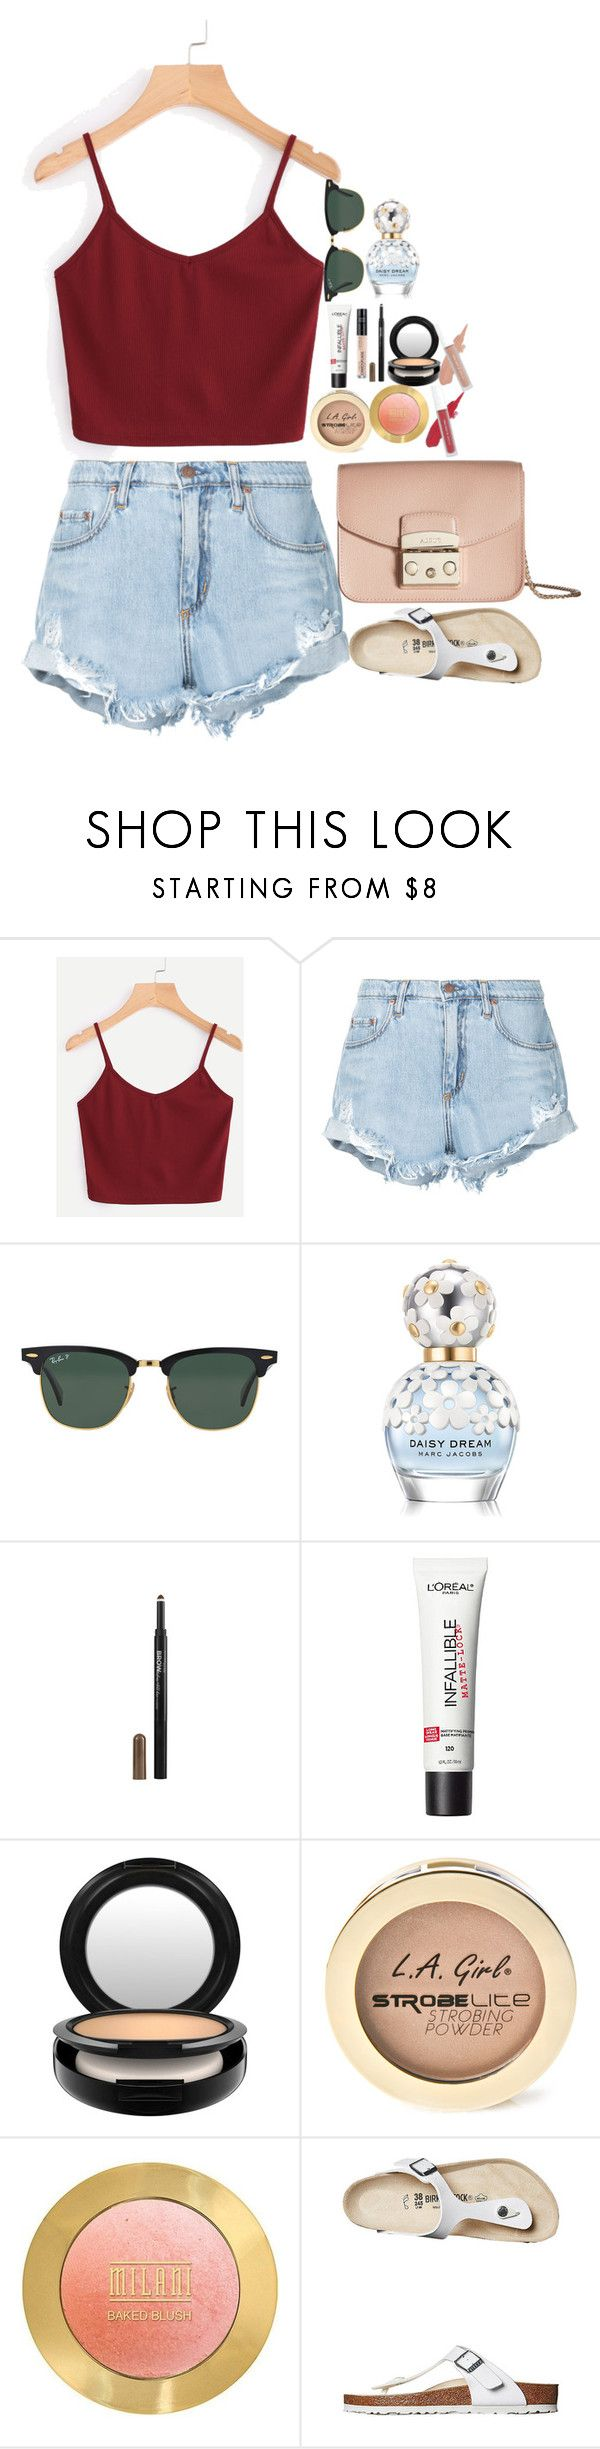 """""""Untitled #4909"""" by veronicaptr ❤ liked on Polyvore featuring Nobody Denim, Ray-Ban, Marc Jacobs, Maybelline, MAC Cosmetics, L.A. Girl, Birkenstock and Furla"""